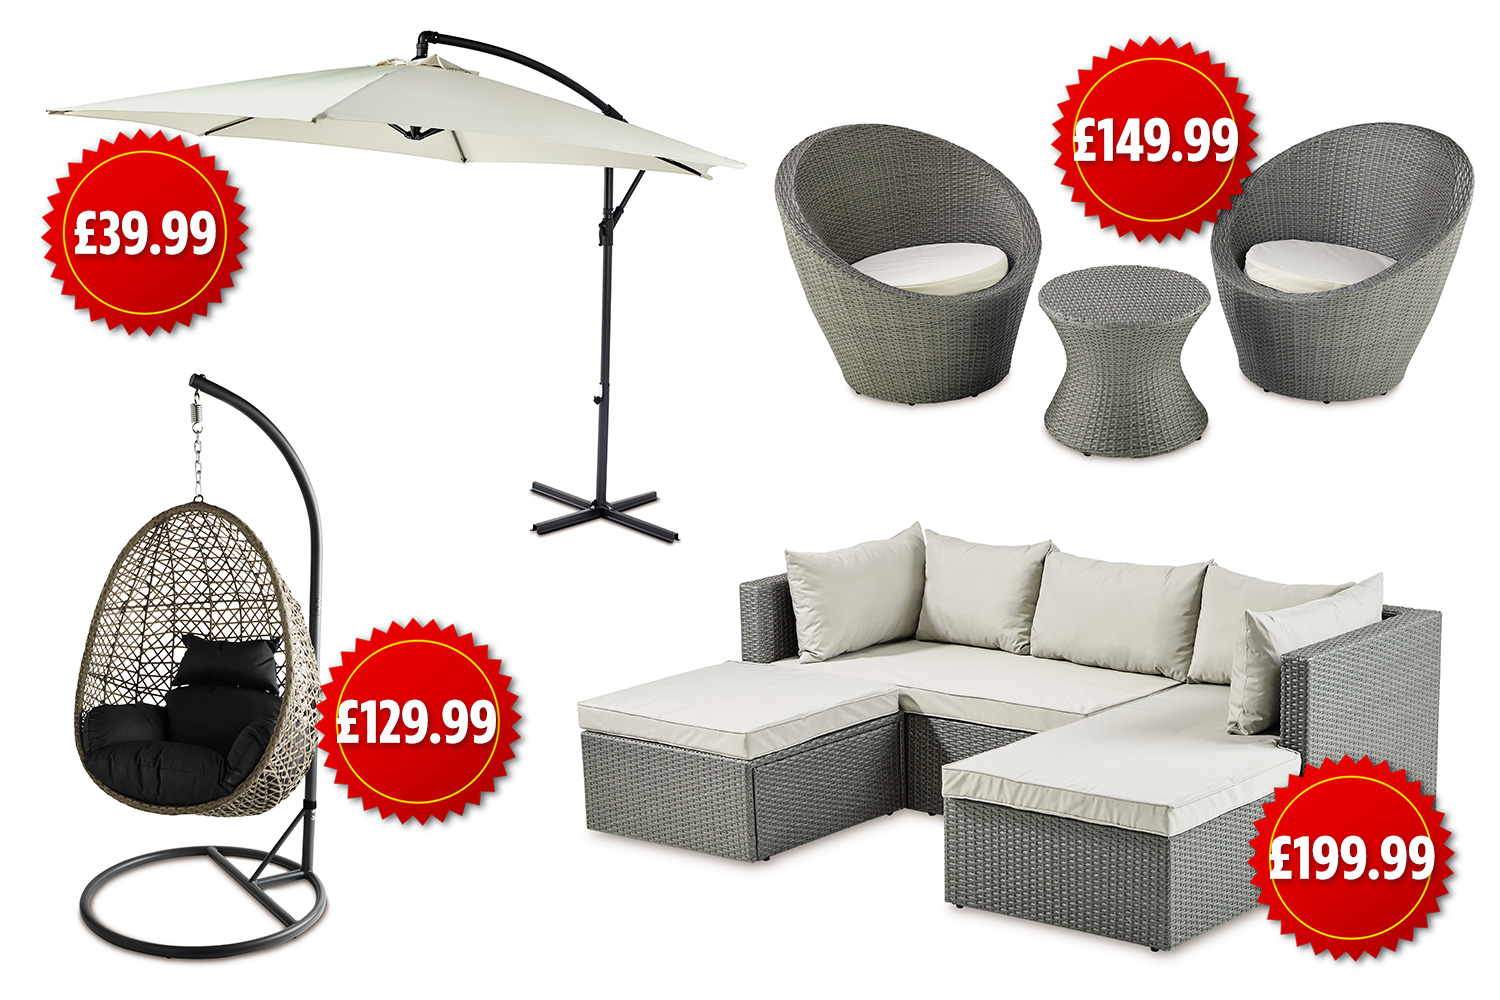 Garden Sofa Range Aldi Selling Beautiful Garden Furniture For A Quarter The Price Of